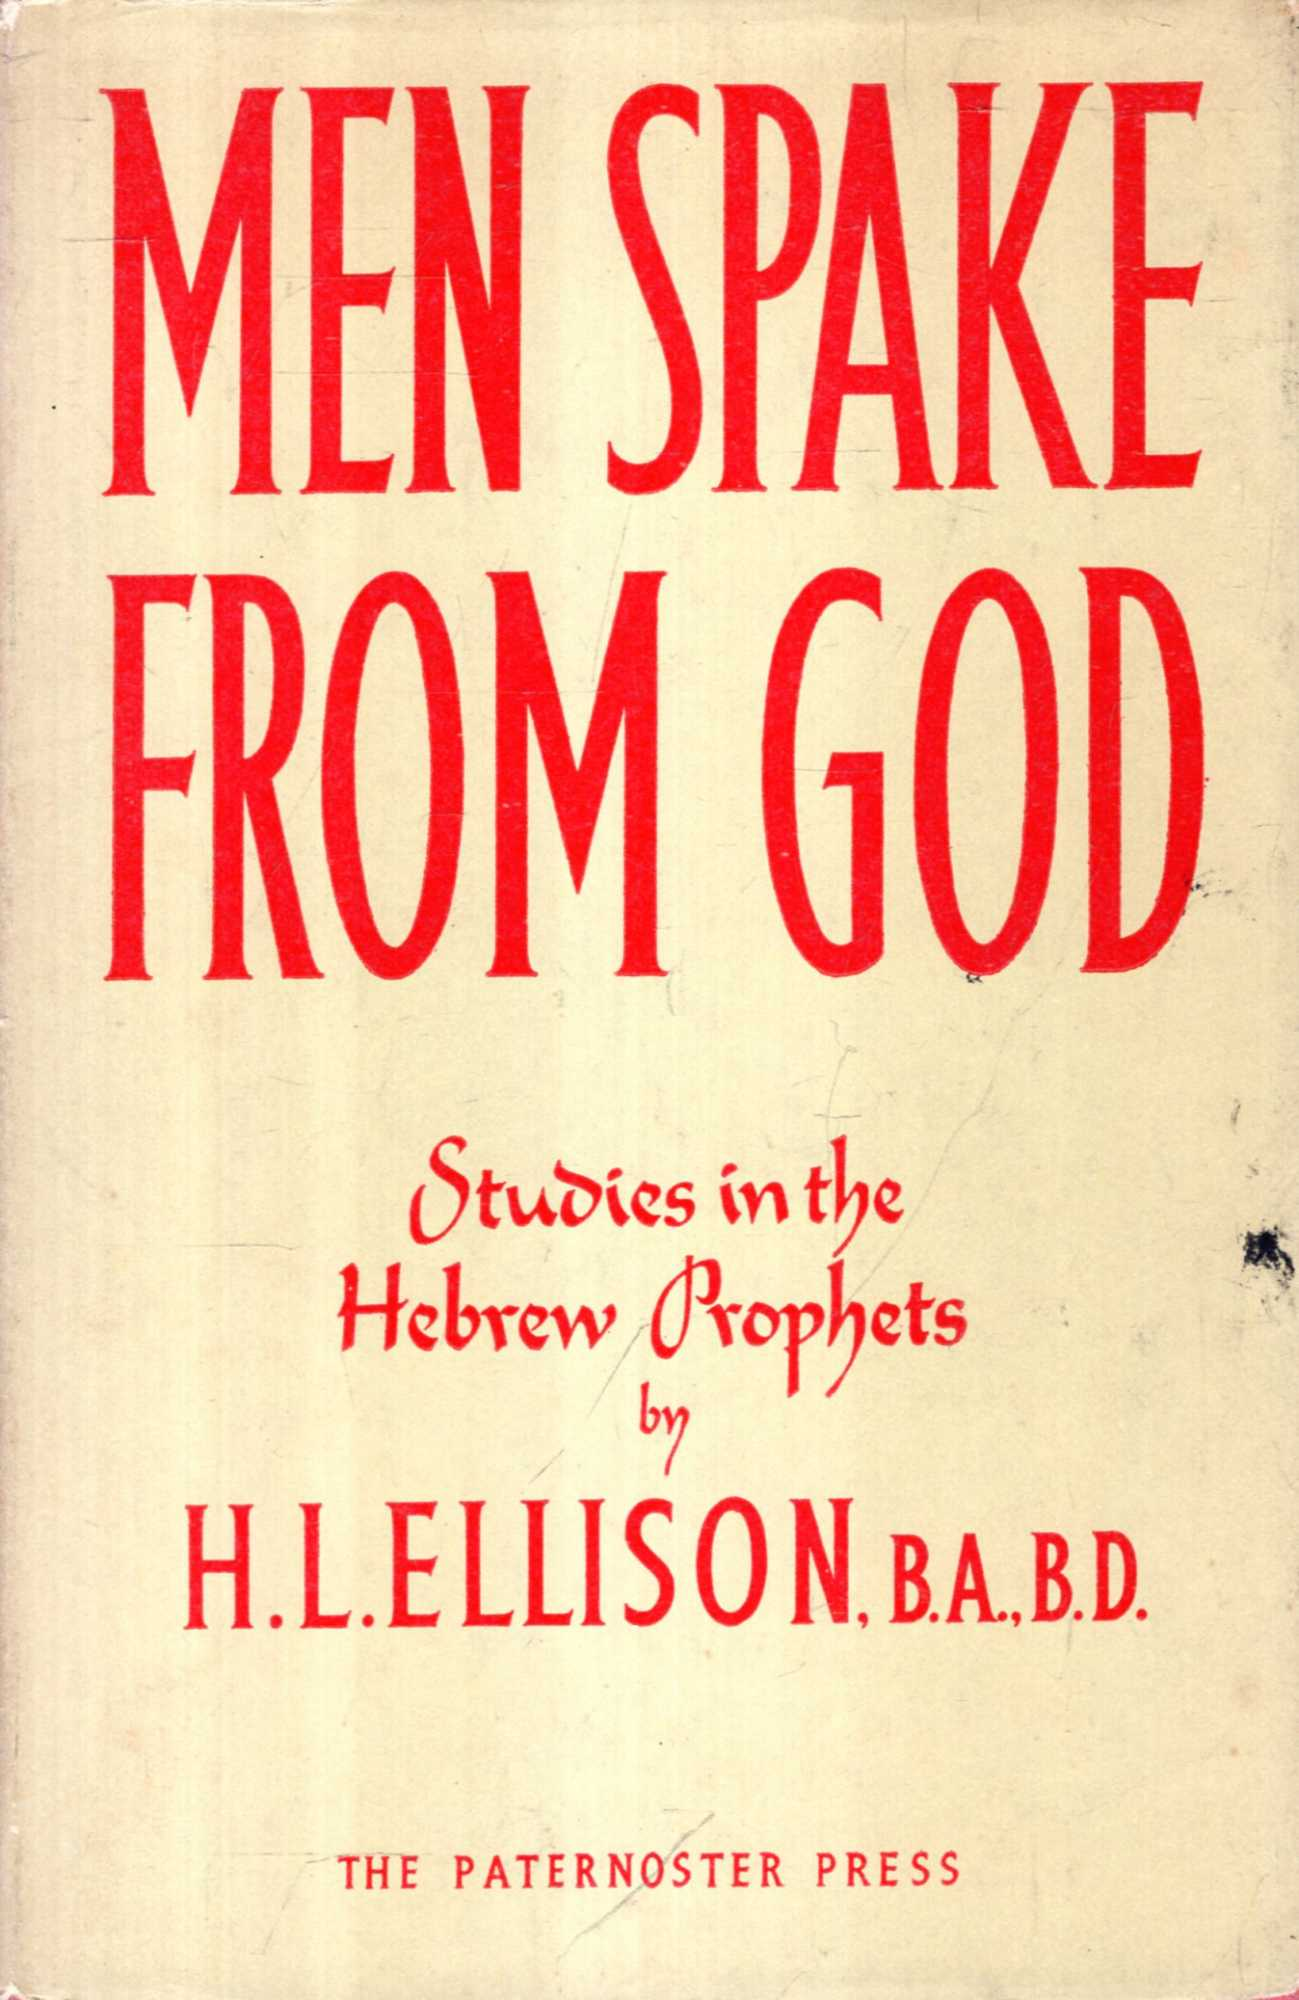 Image for Men Spake From God, studies in the Hebrew Prophets